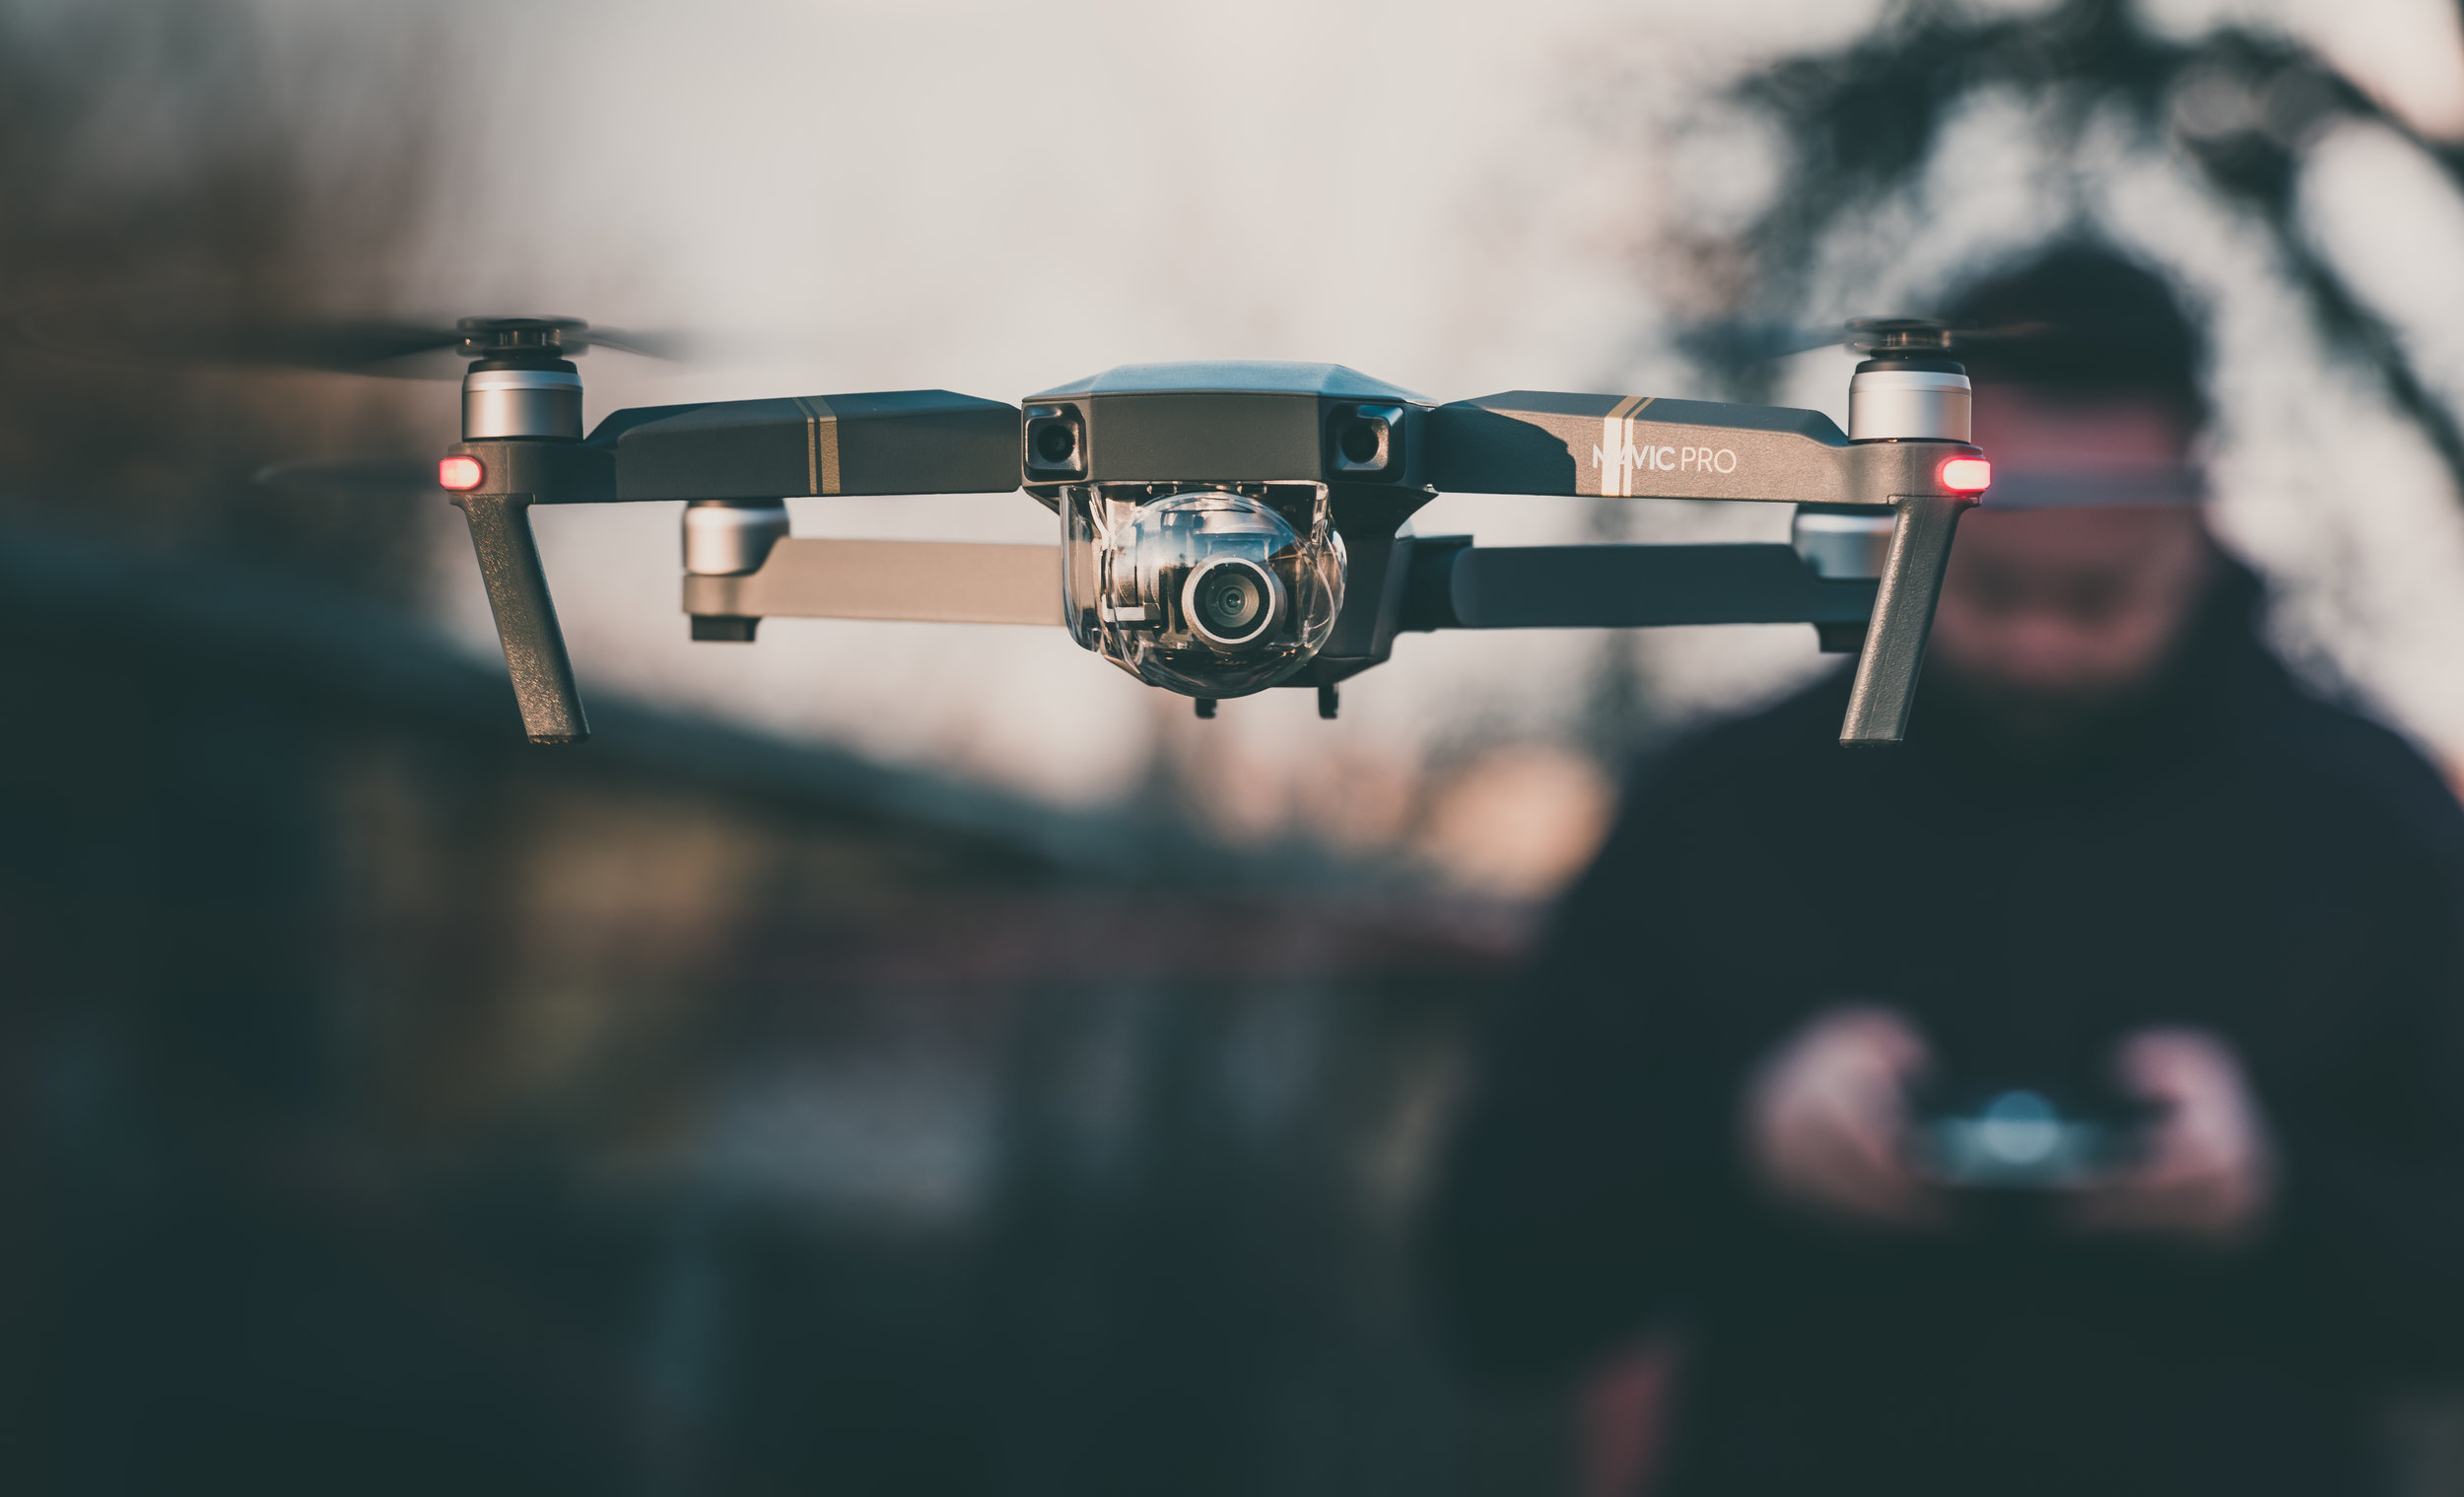 Drone Video Production - Need aerial footage at a business location or event? We are card holding, licensed FAA Part 107 Unmanned Aircraft Pilots that take to the skies to capture the aerial imagery you need.